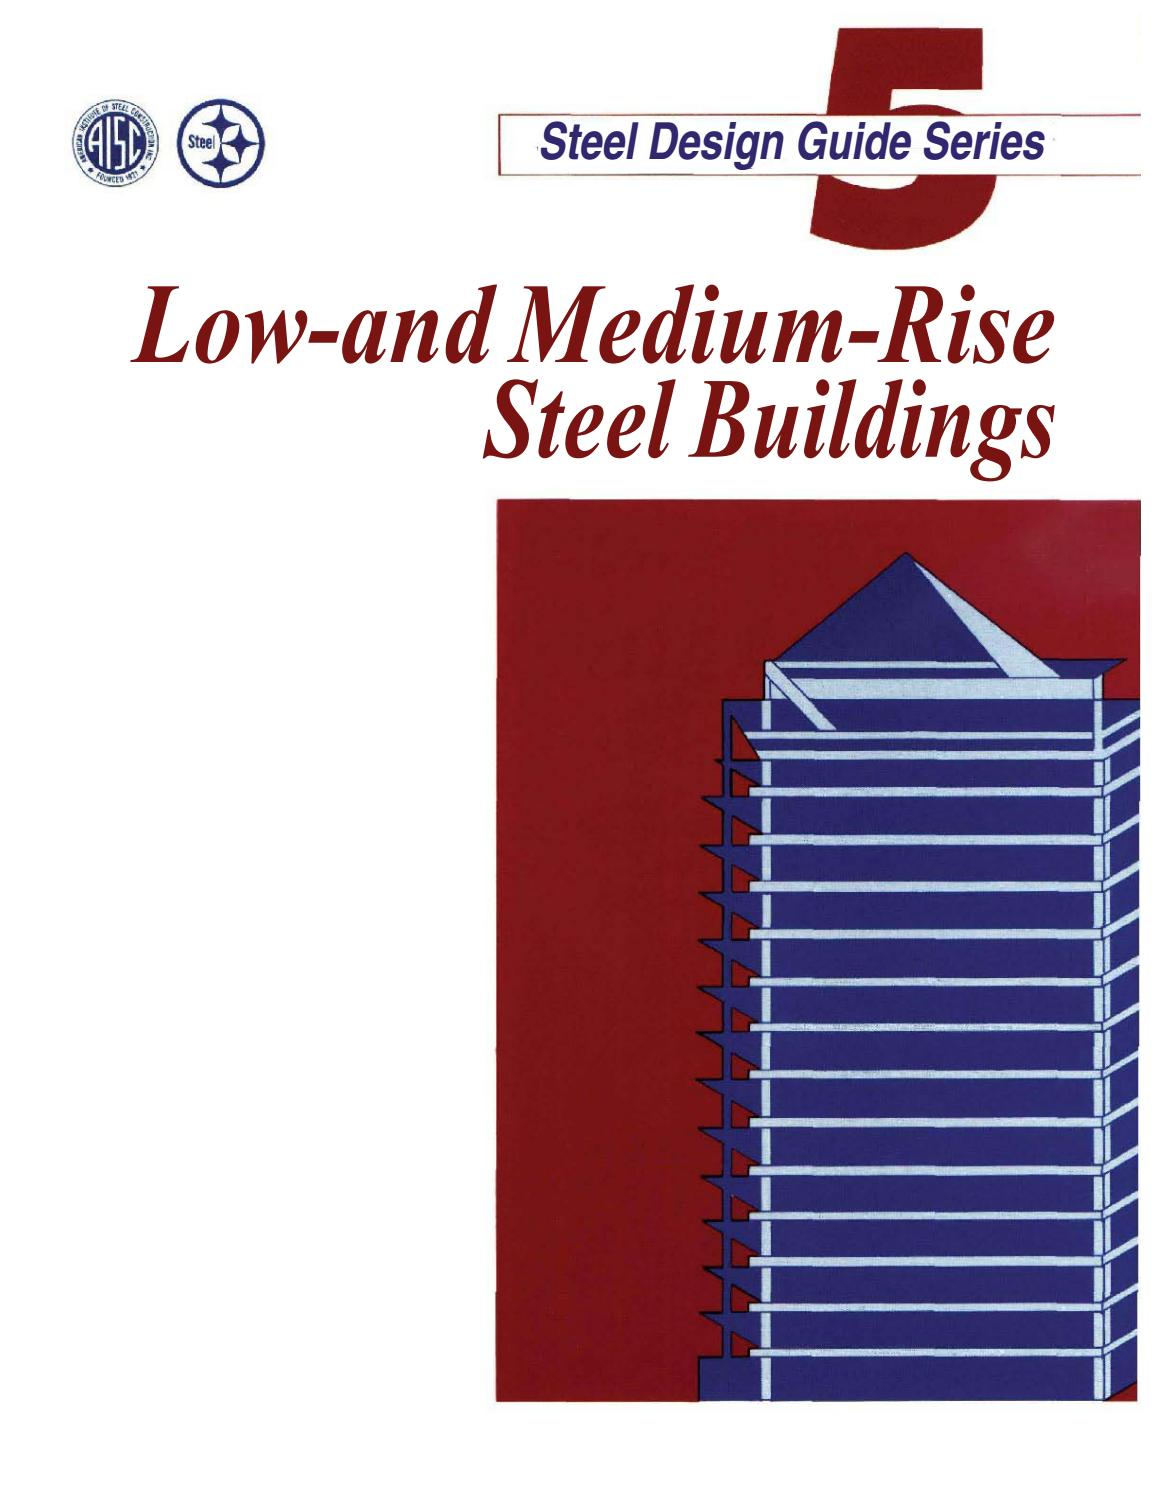 Aisc design guide 05 low and medium rise steel buildings by